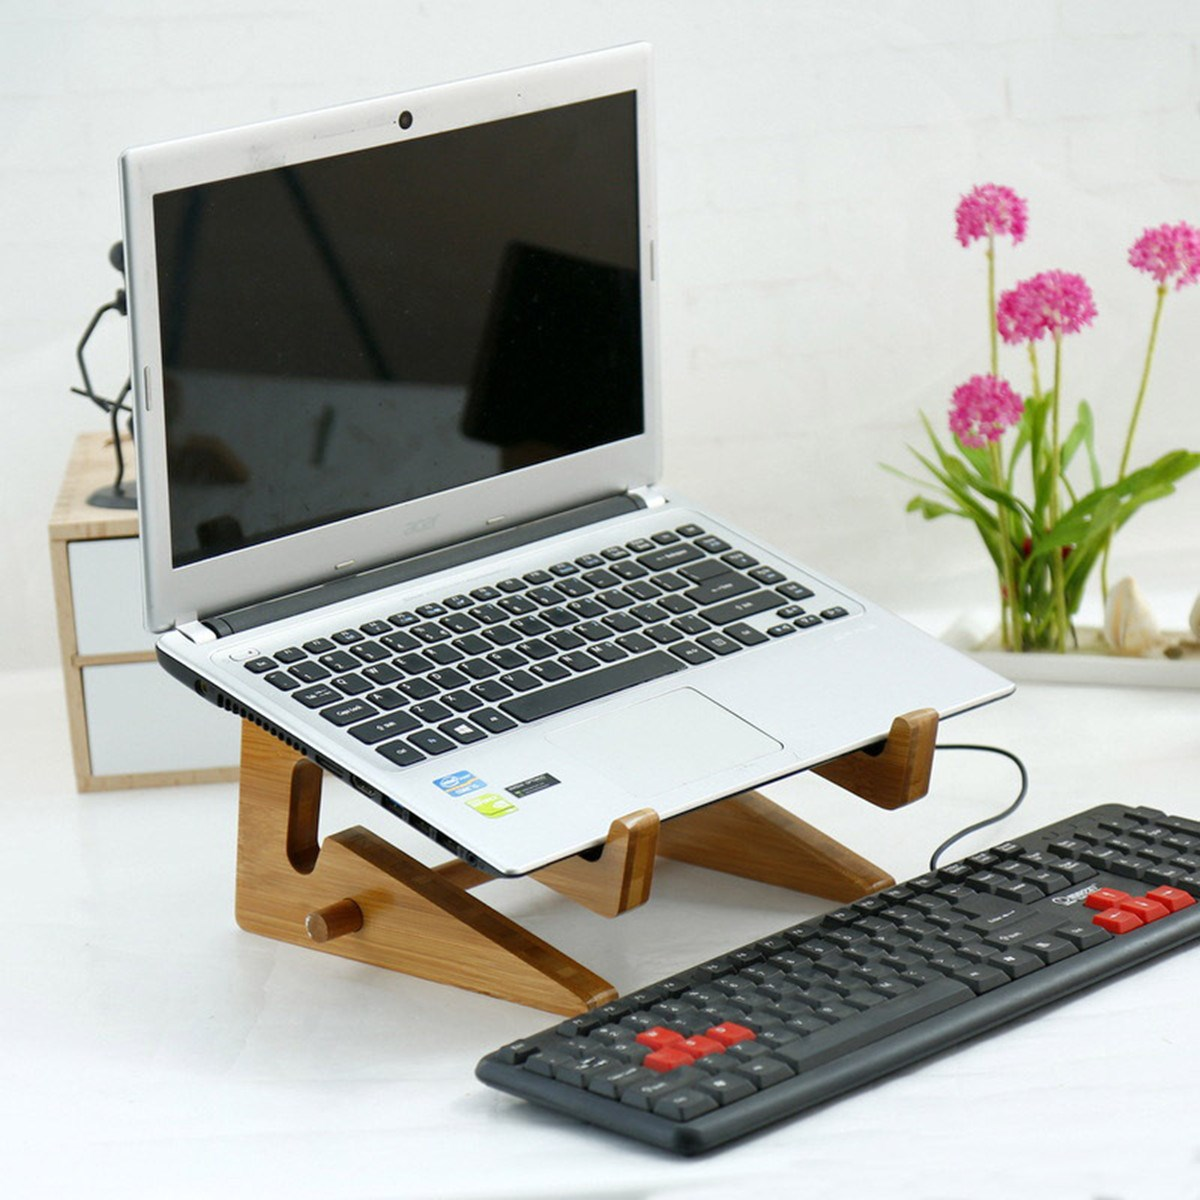 Compare Prices on Wood Laptop Stand Online ShoppingBuy Low Price